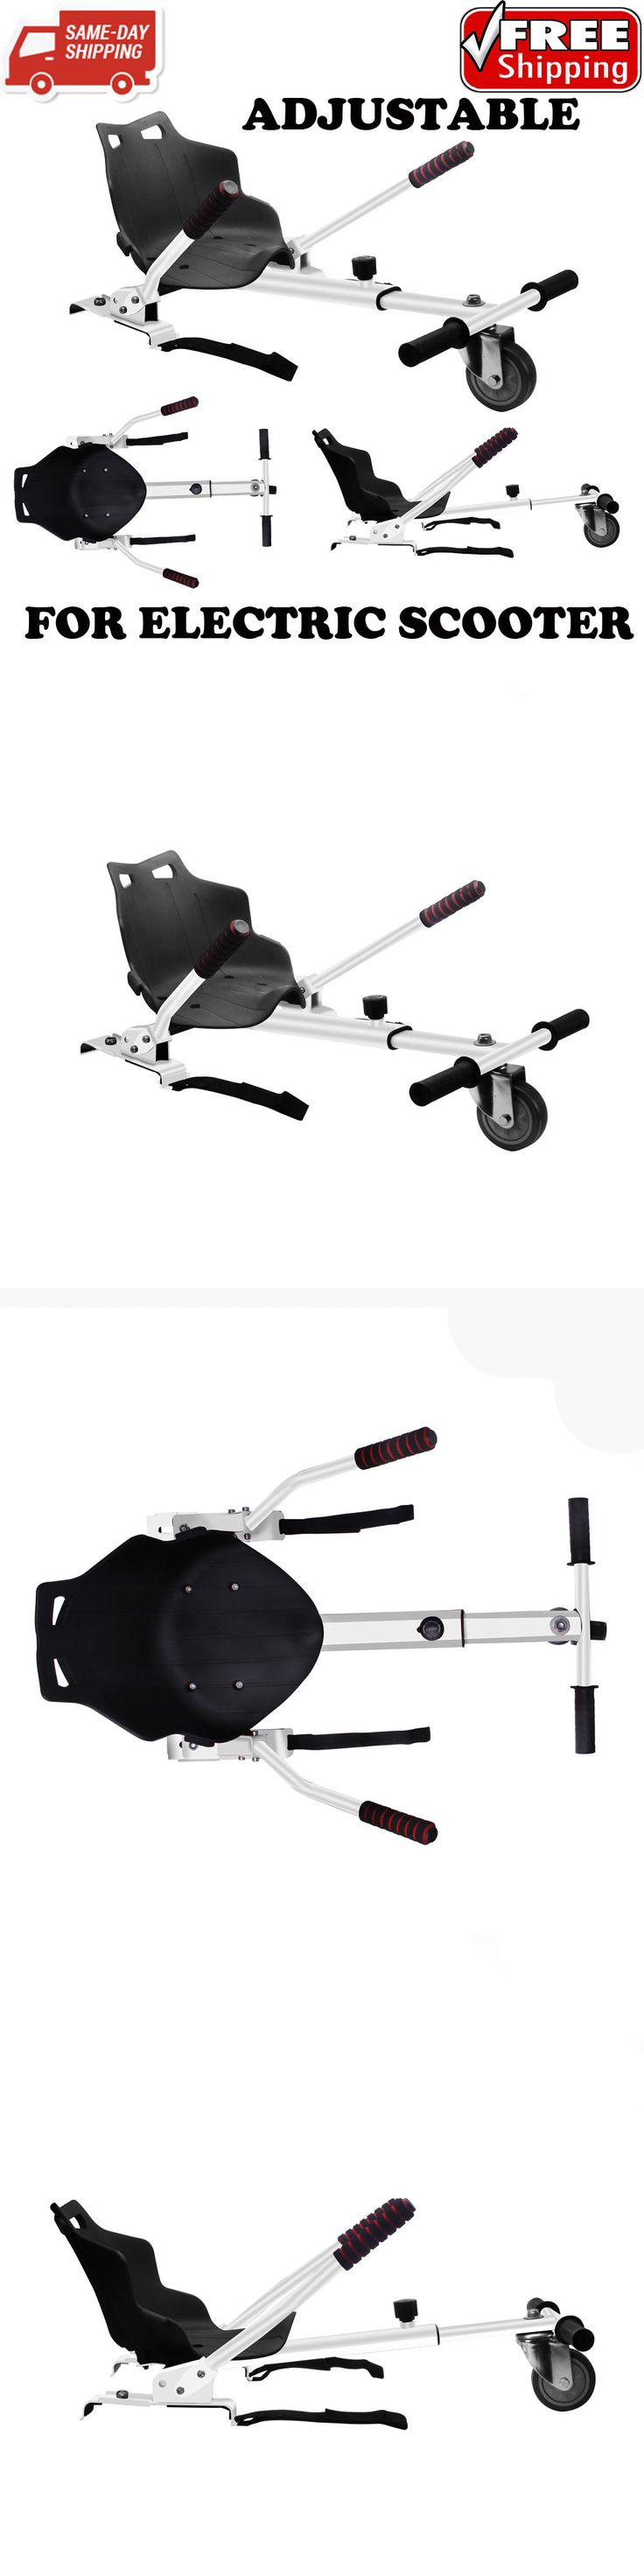 Parts and Accessories 11332: White Adjustable Go Kart Car Hoverkart Two Wheel Self Balancing Scooter For Kids -> BUY IT NOW ONLY: $37.89 on eBay!